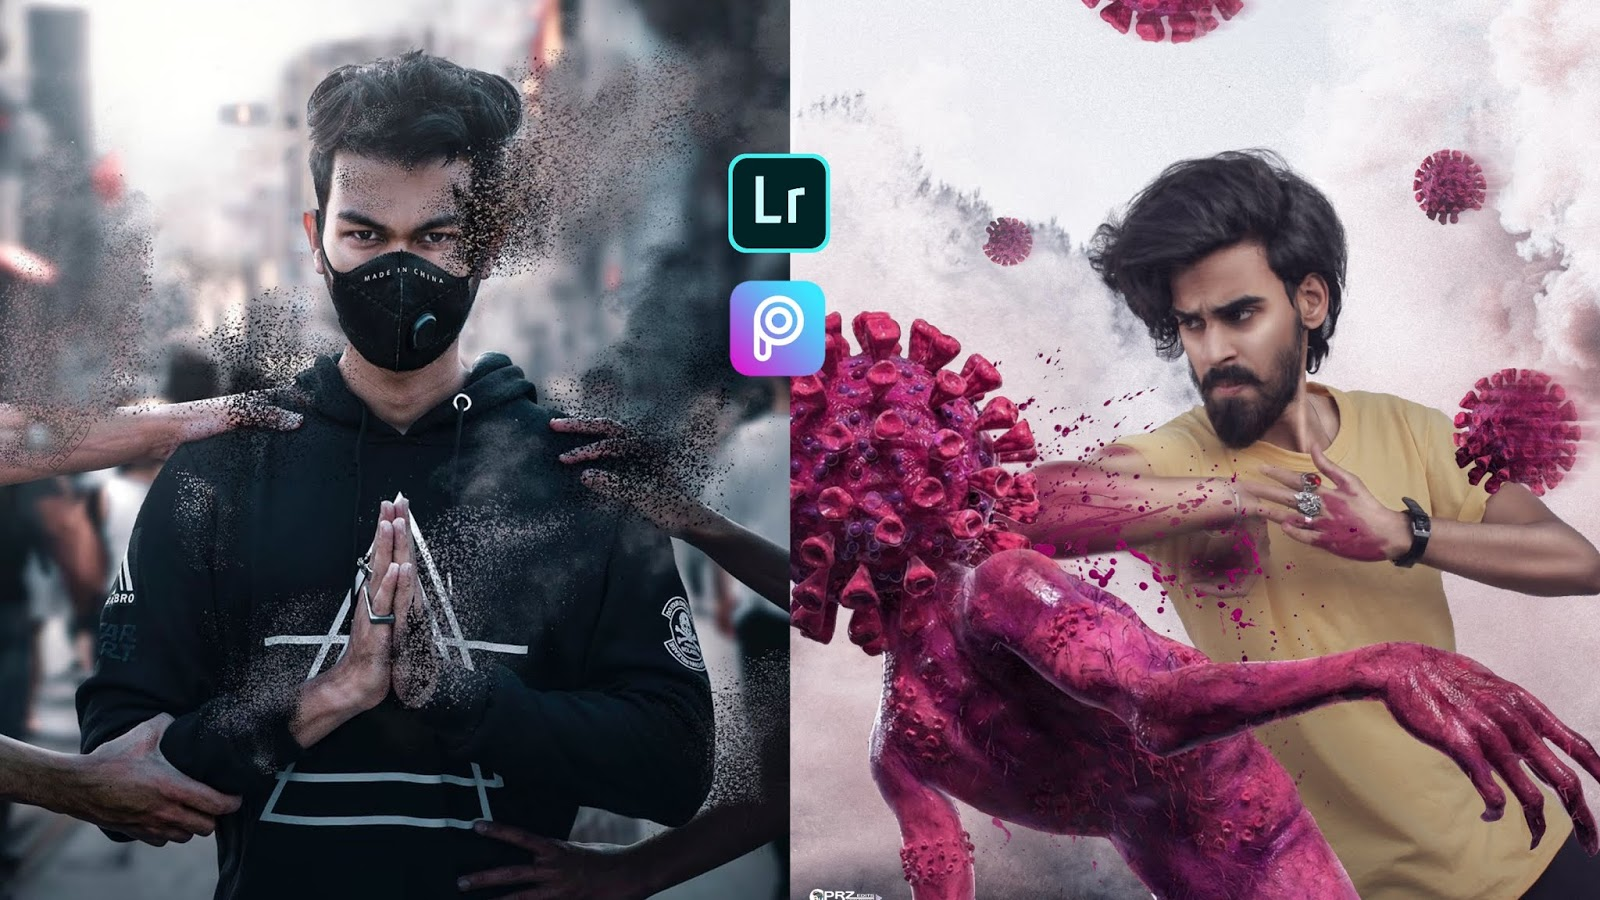 PicsArt vs. Lightroom: Discover the Main Differences and Choose the Best